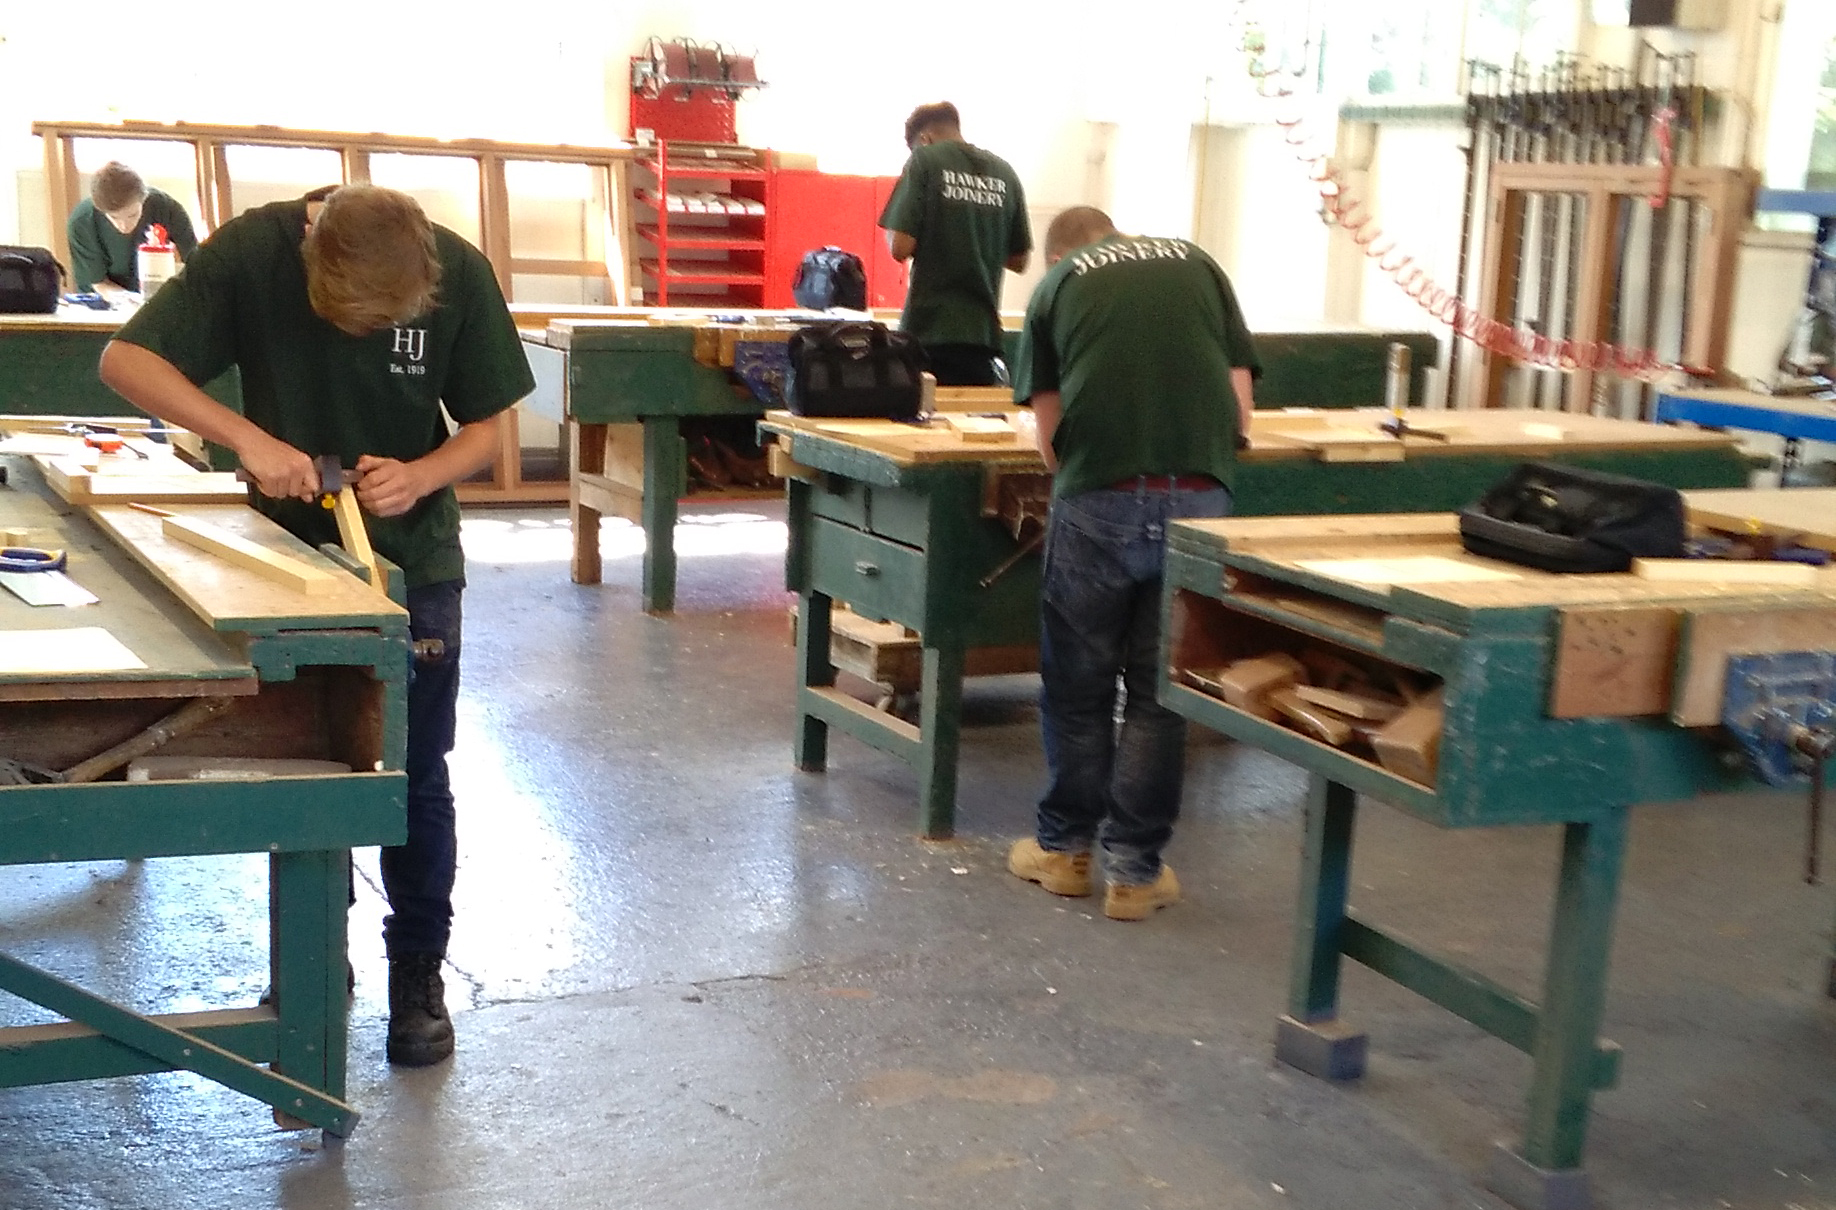 Hawker Joinery Apprentices in the Workshop